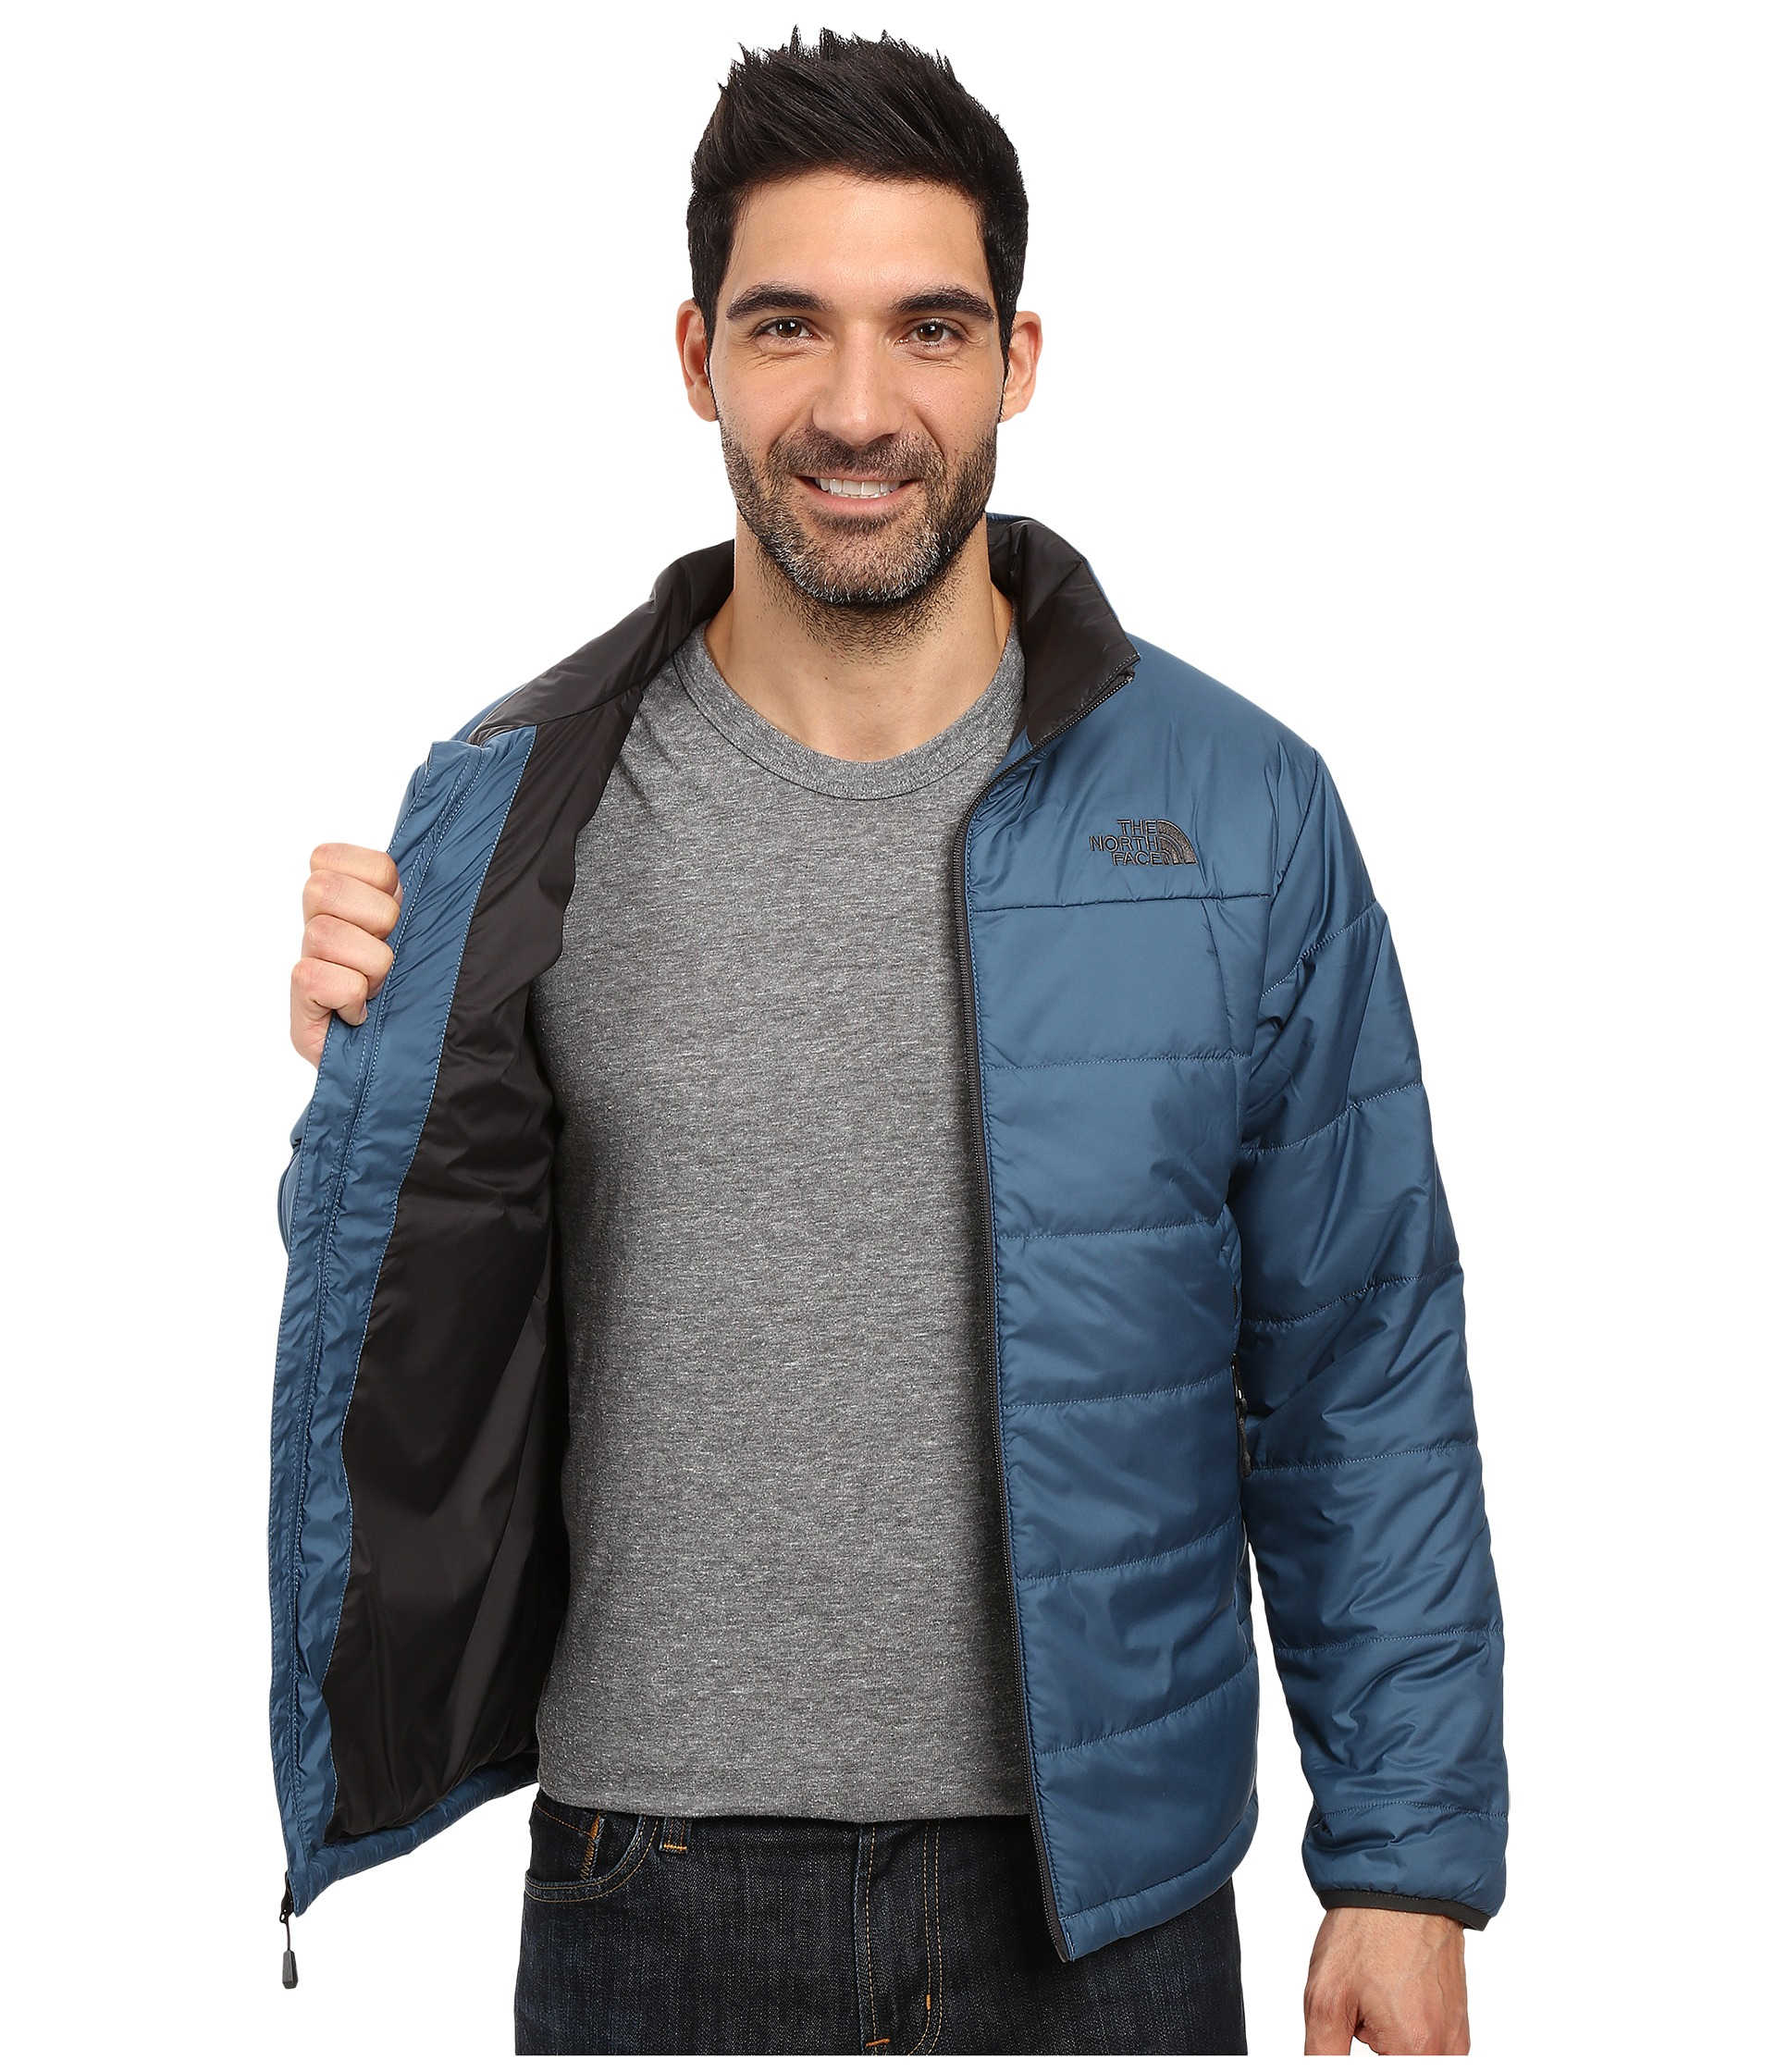 Bombay Lyst The Jacket Face Men North for 0qOUqxtw daad0f22e